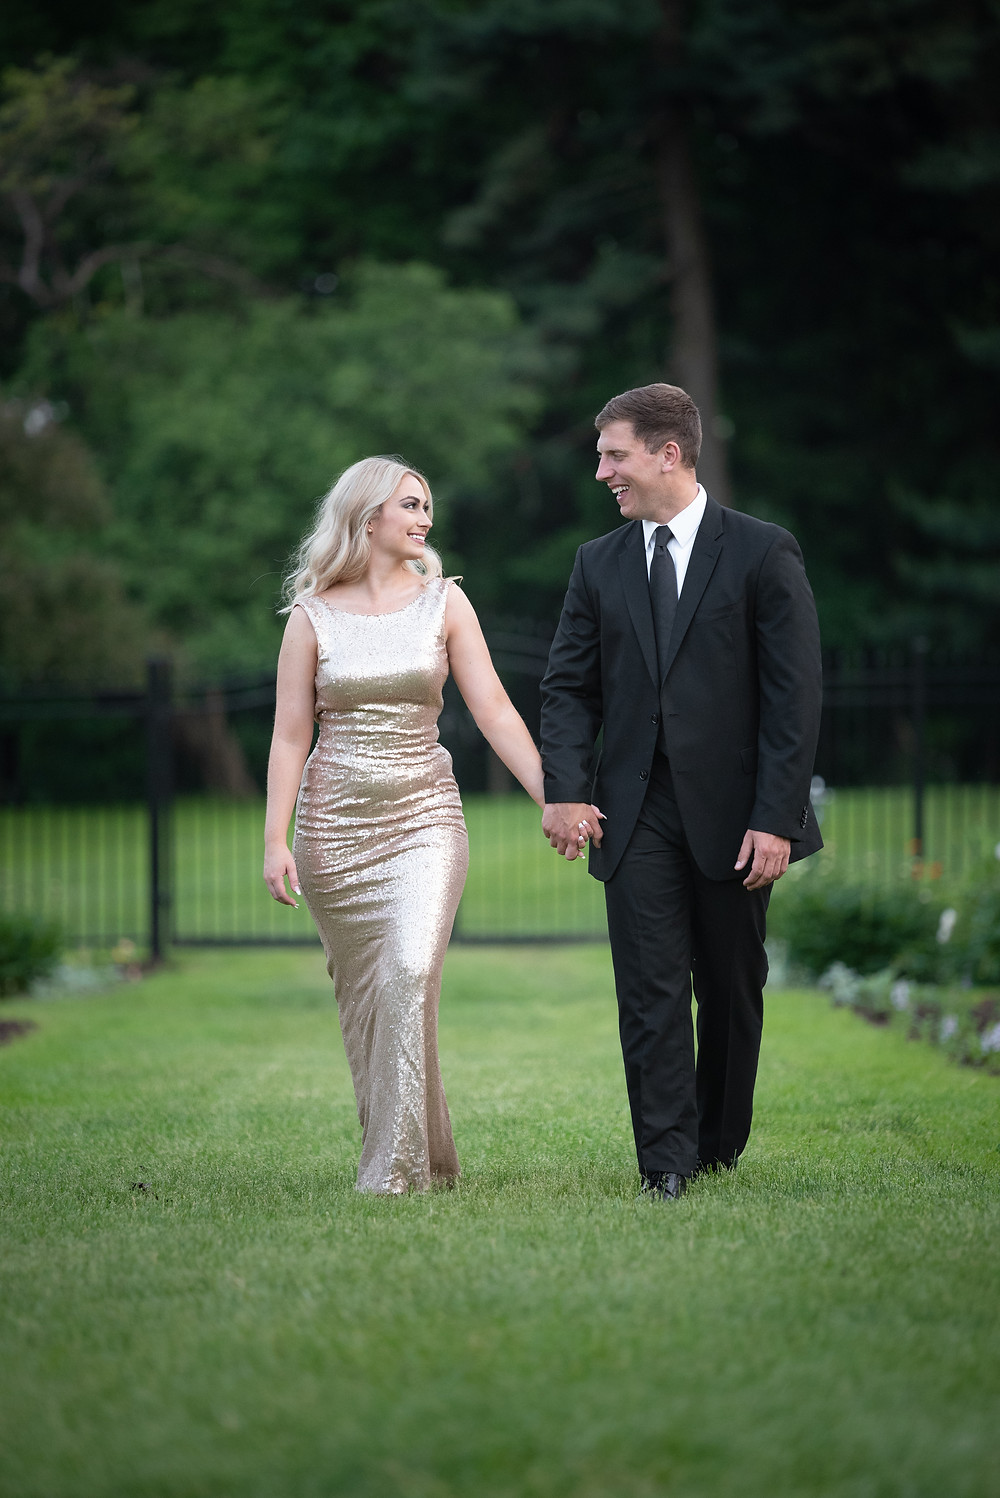 Newly engaged couple taking a stroll through the gardens at Hartwood Acres